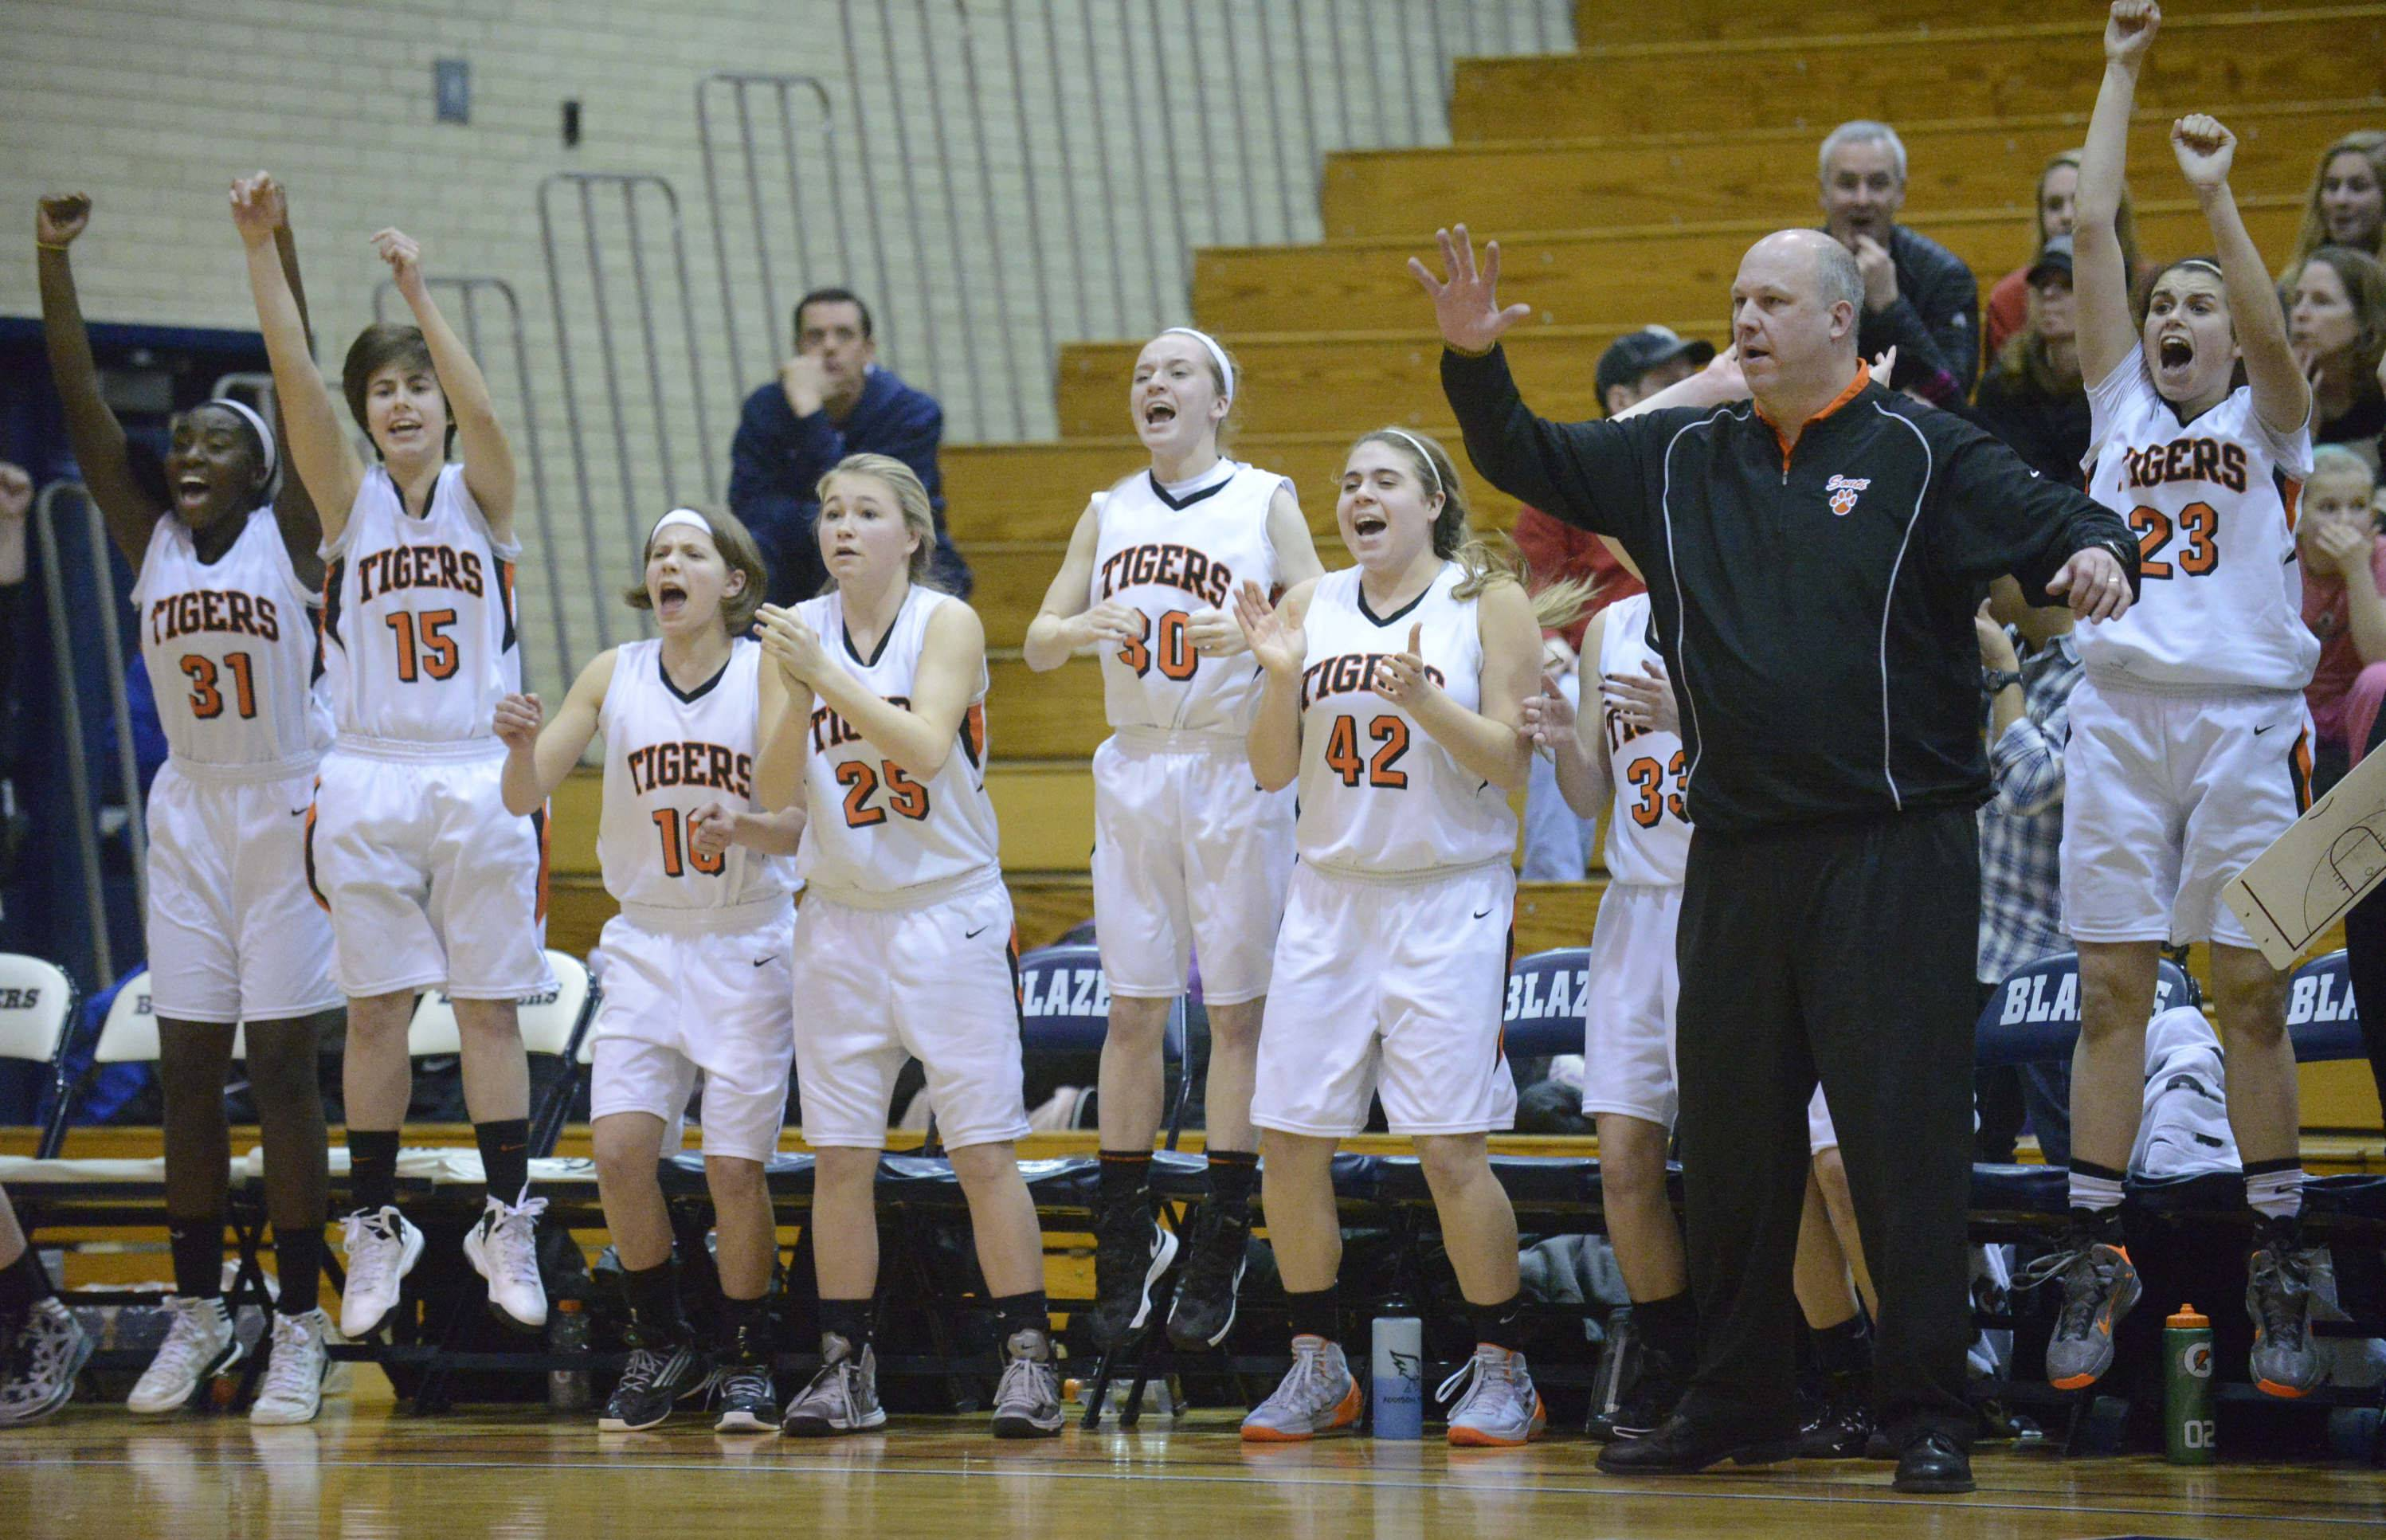 Images from the Geneva vs. Wheaton Warrenville South girls sectional semifinal basketball game Tuesday, February 25, 2014 in Addison.